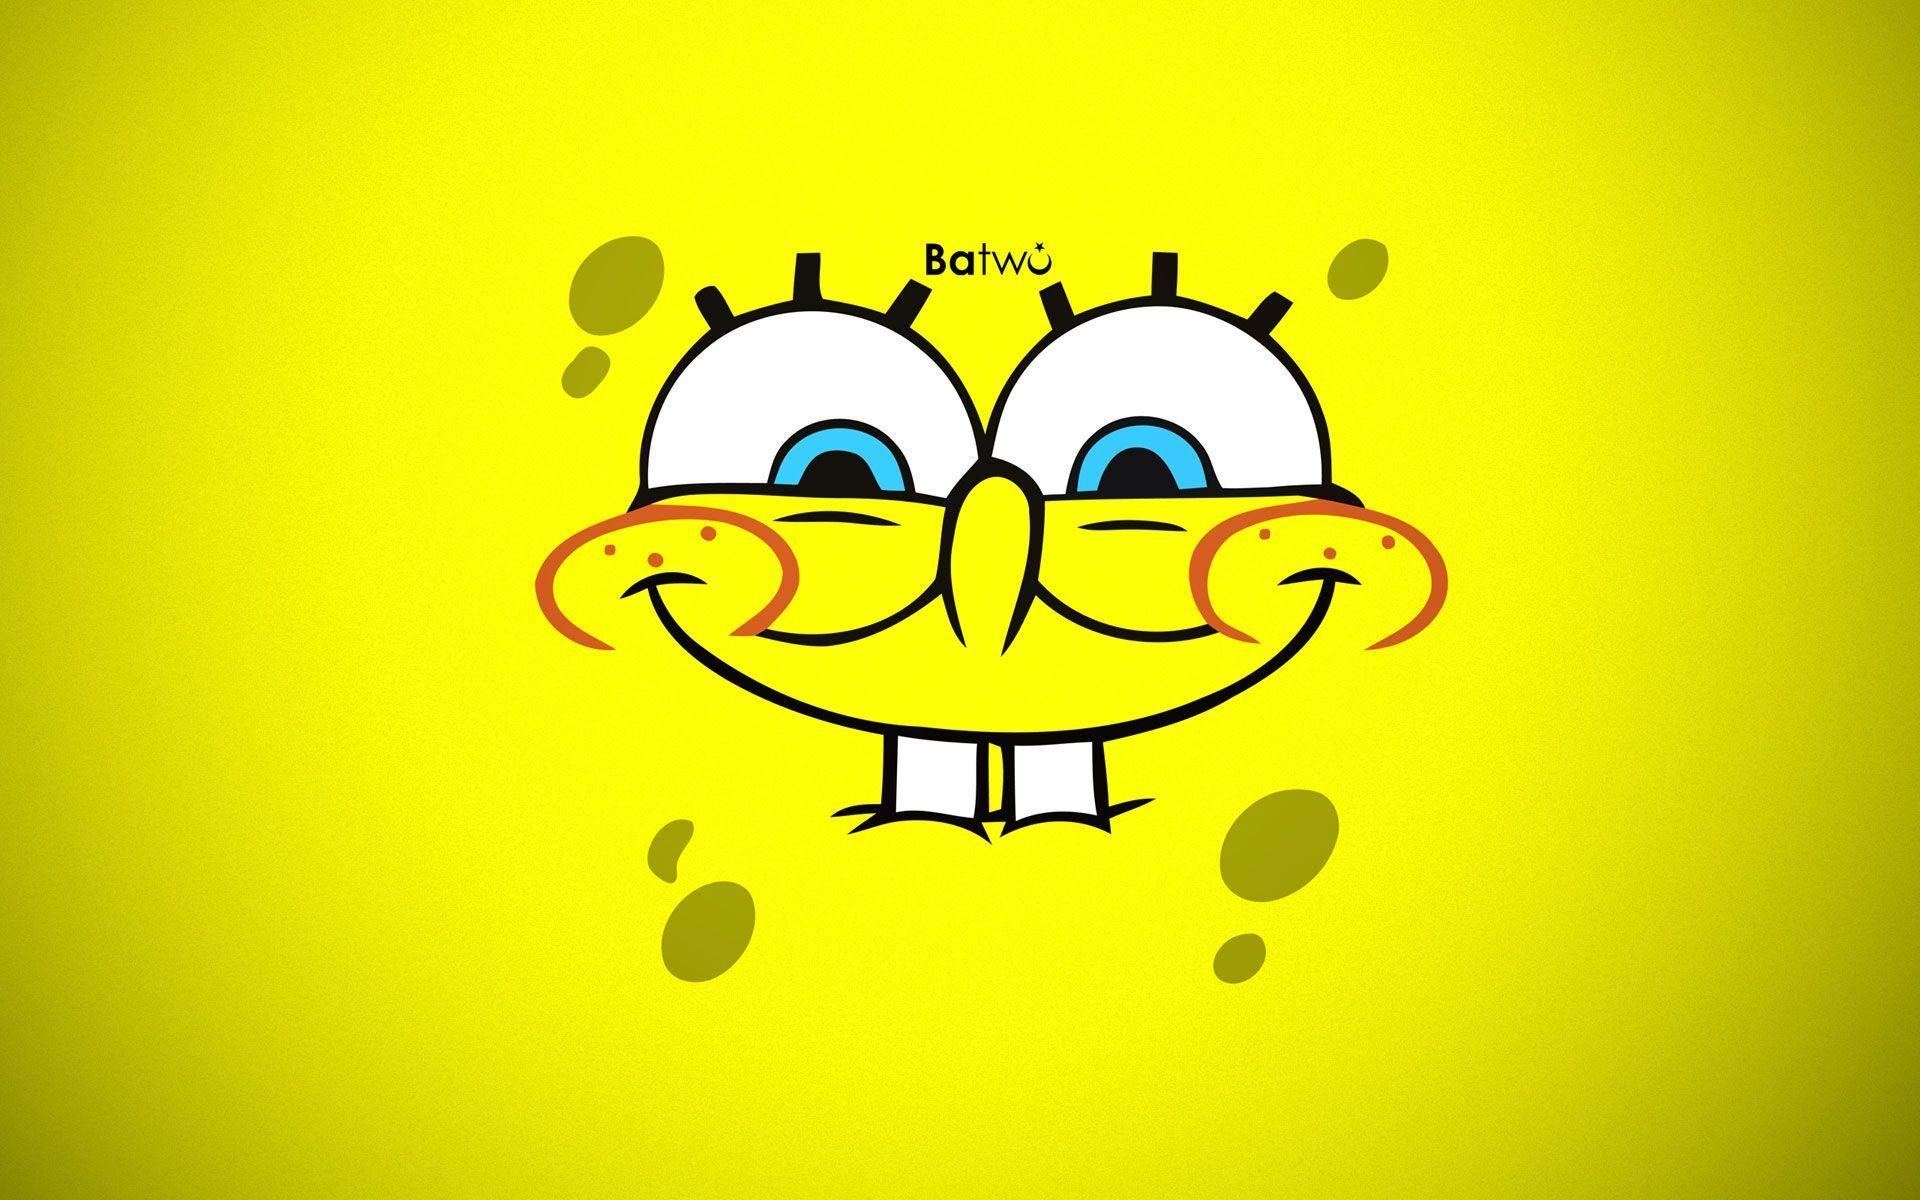 Wallpaper Spongebob Squarepants Iphone 1920x1200PX ~ Wallpaper ...